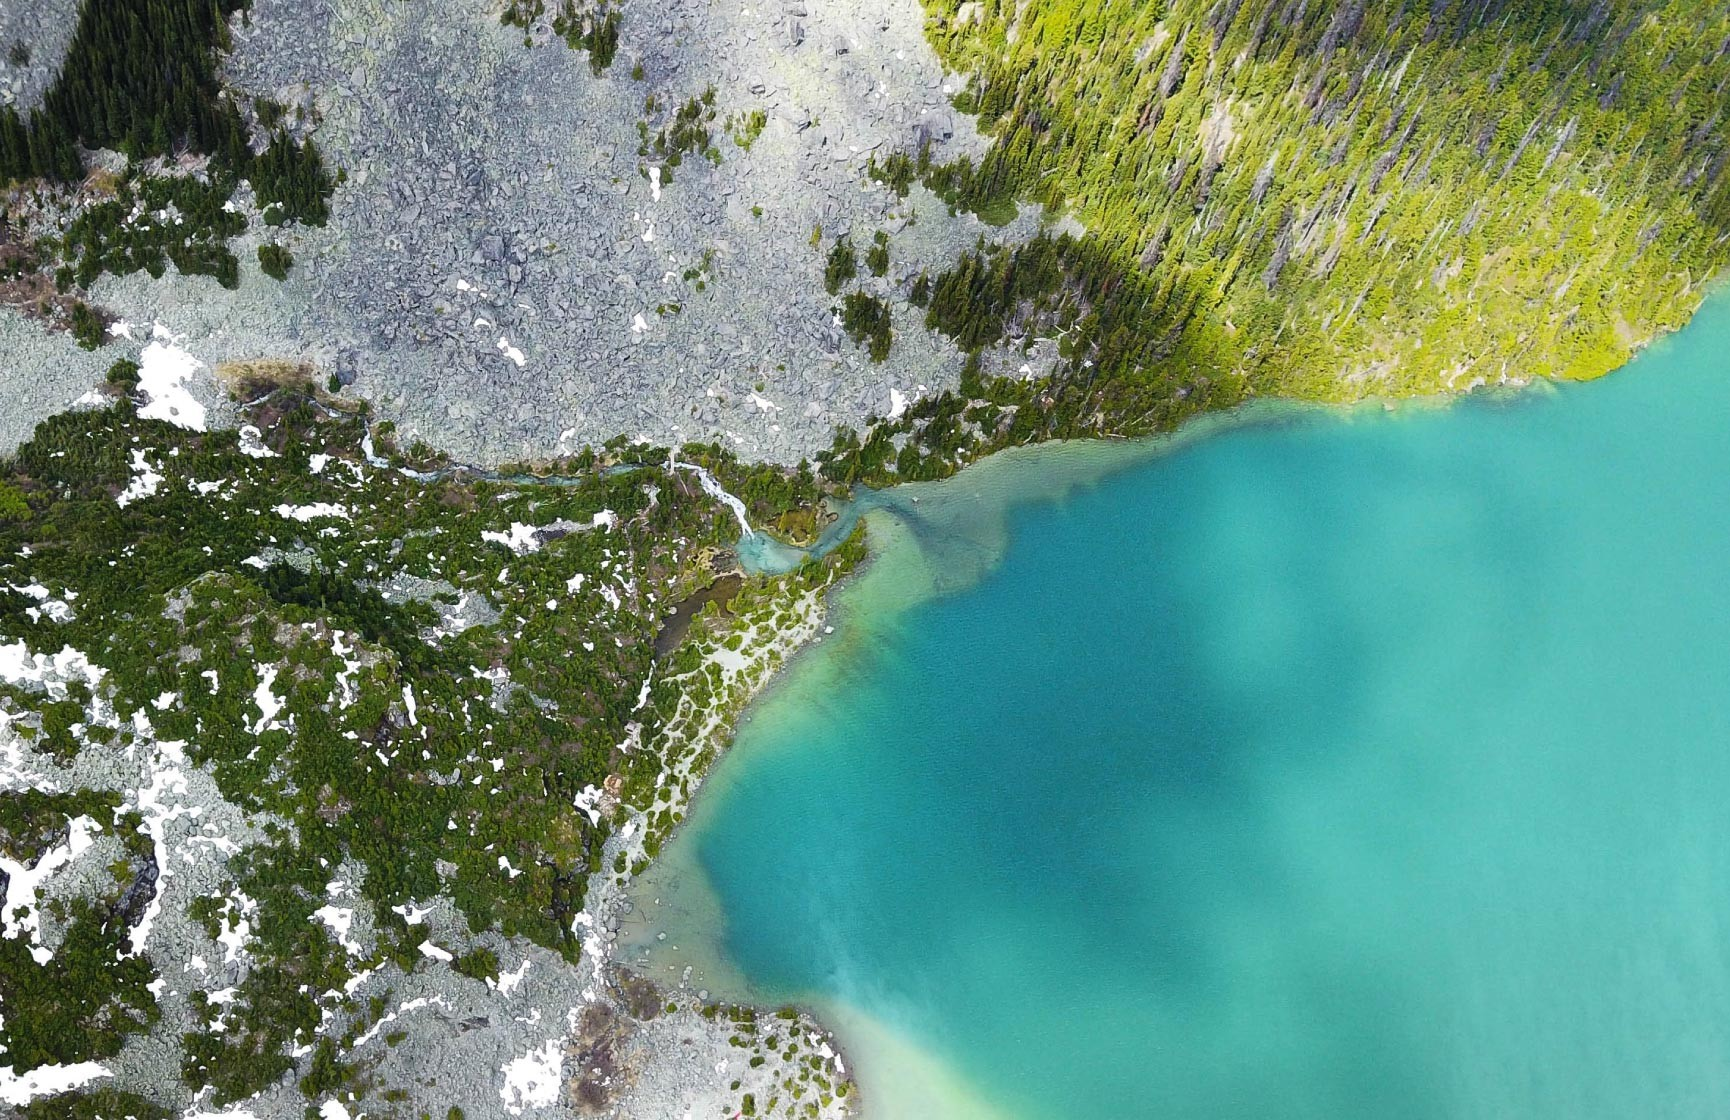 An aerial view of Joffre Lake in British Columbia